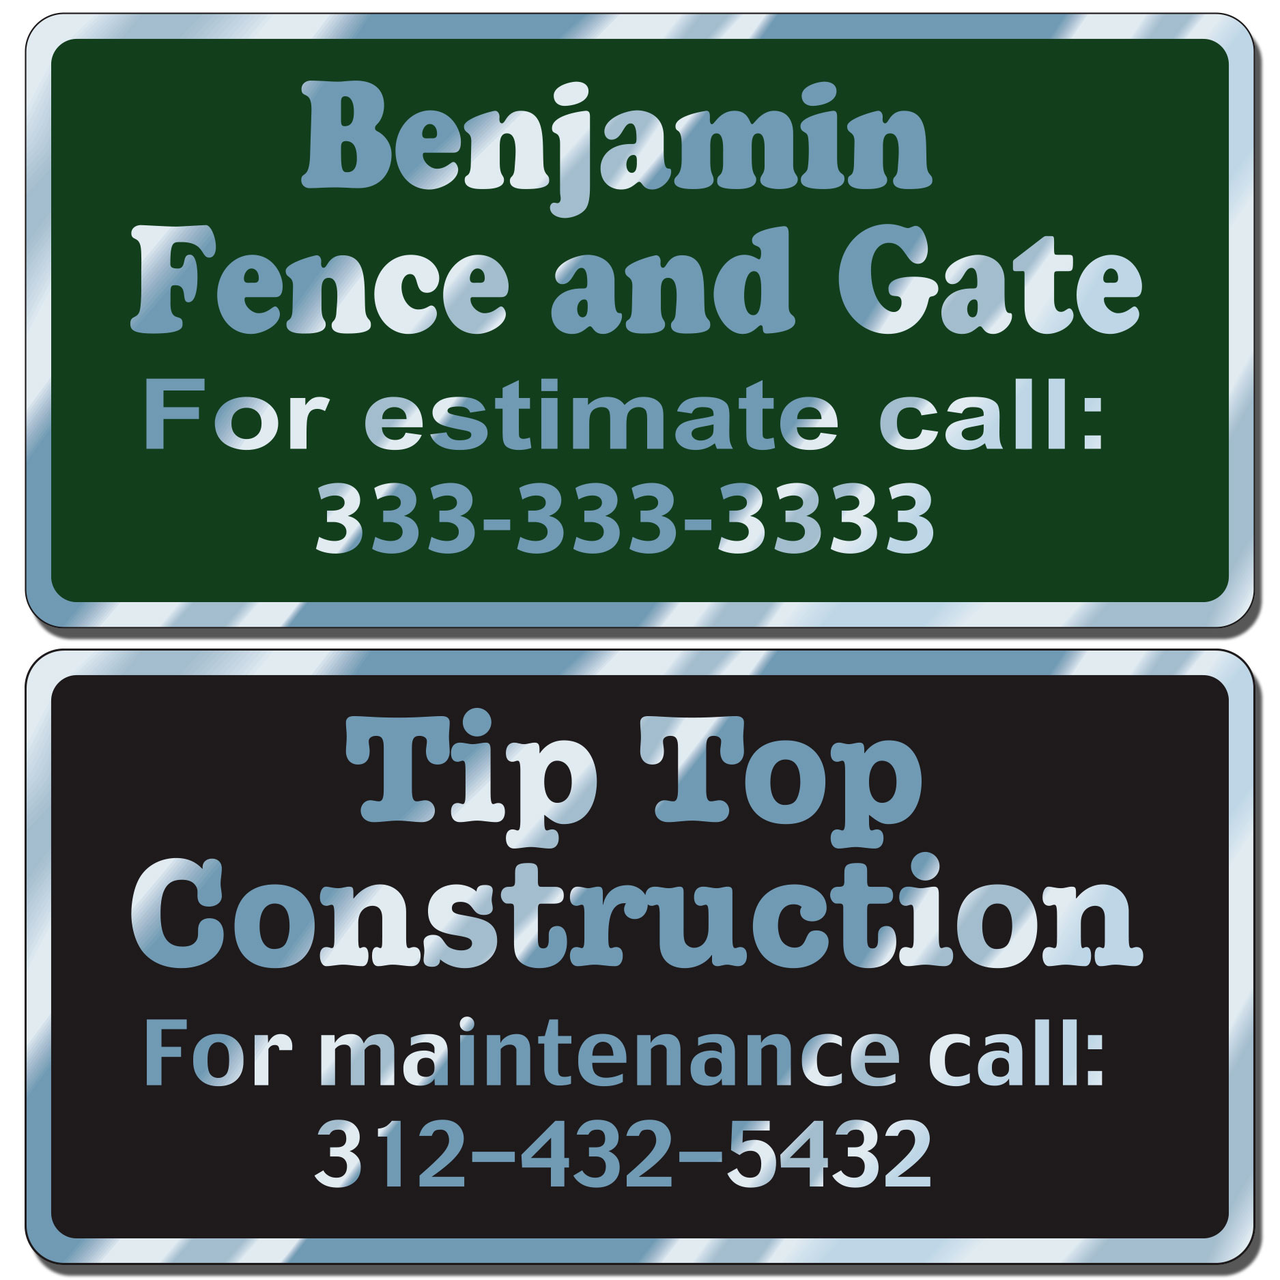 Custom business stickers for indoor or outdoor use allow endless design possibilities and project a professional